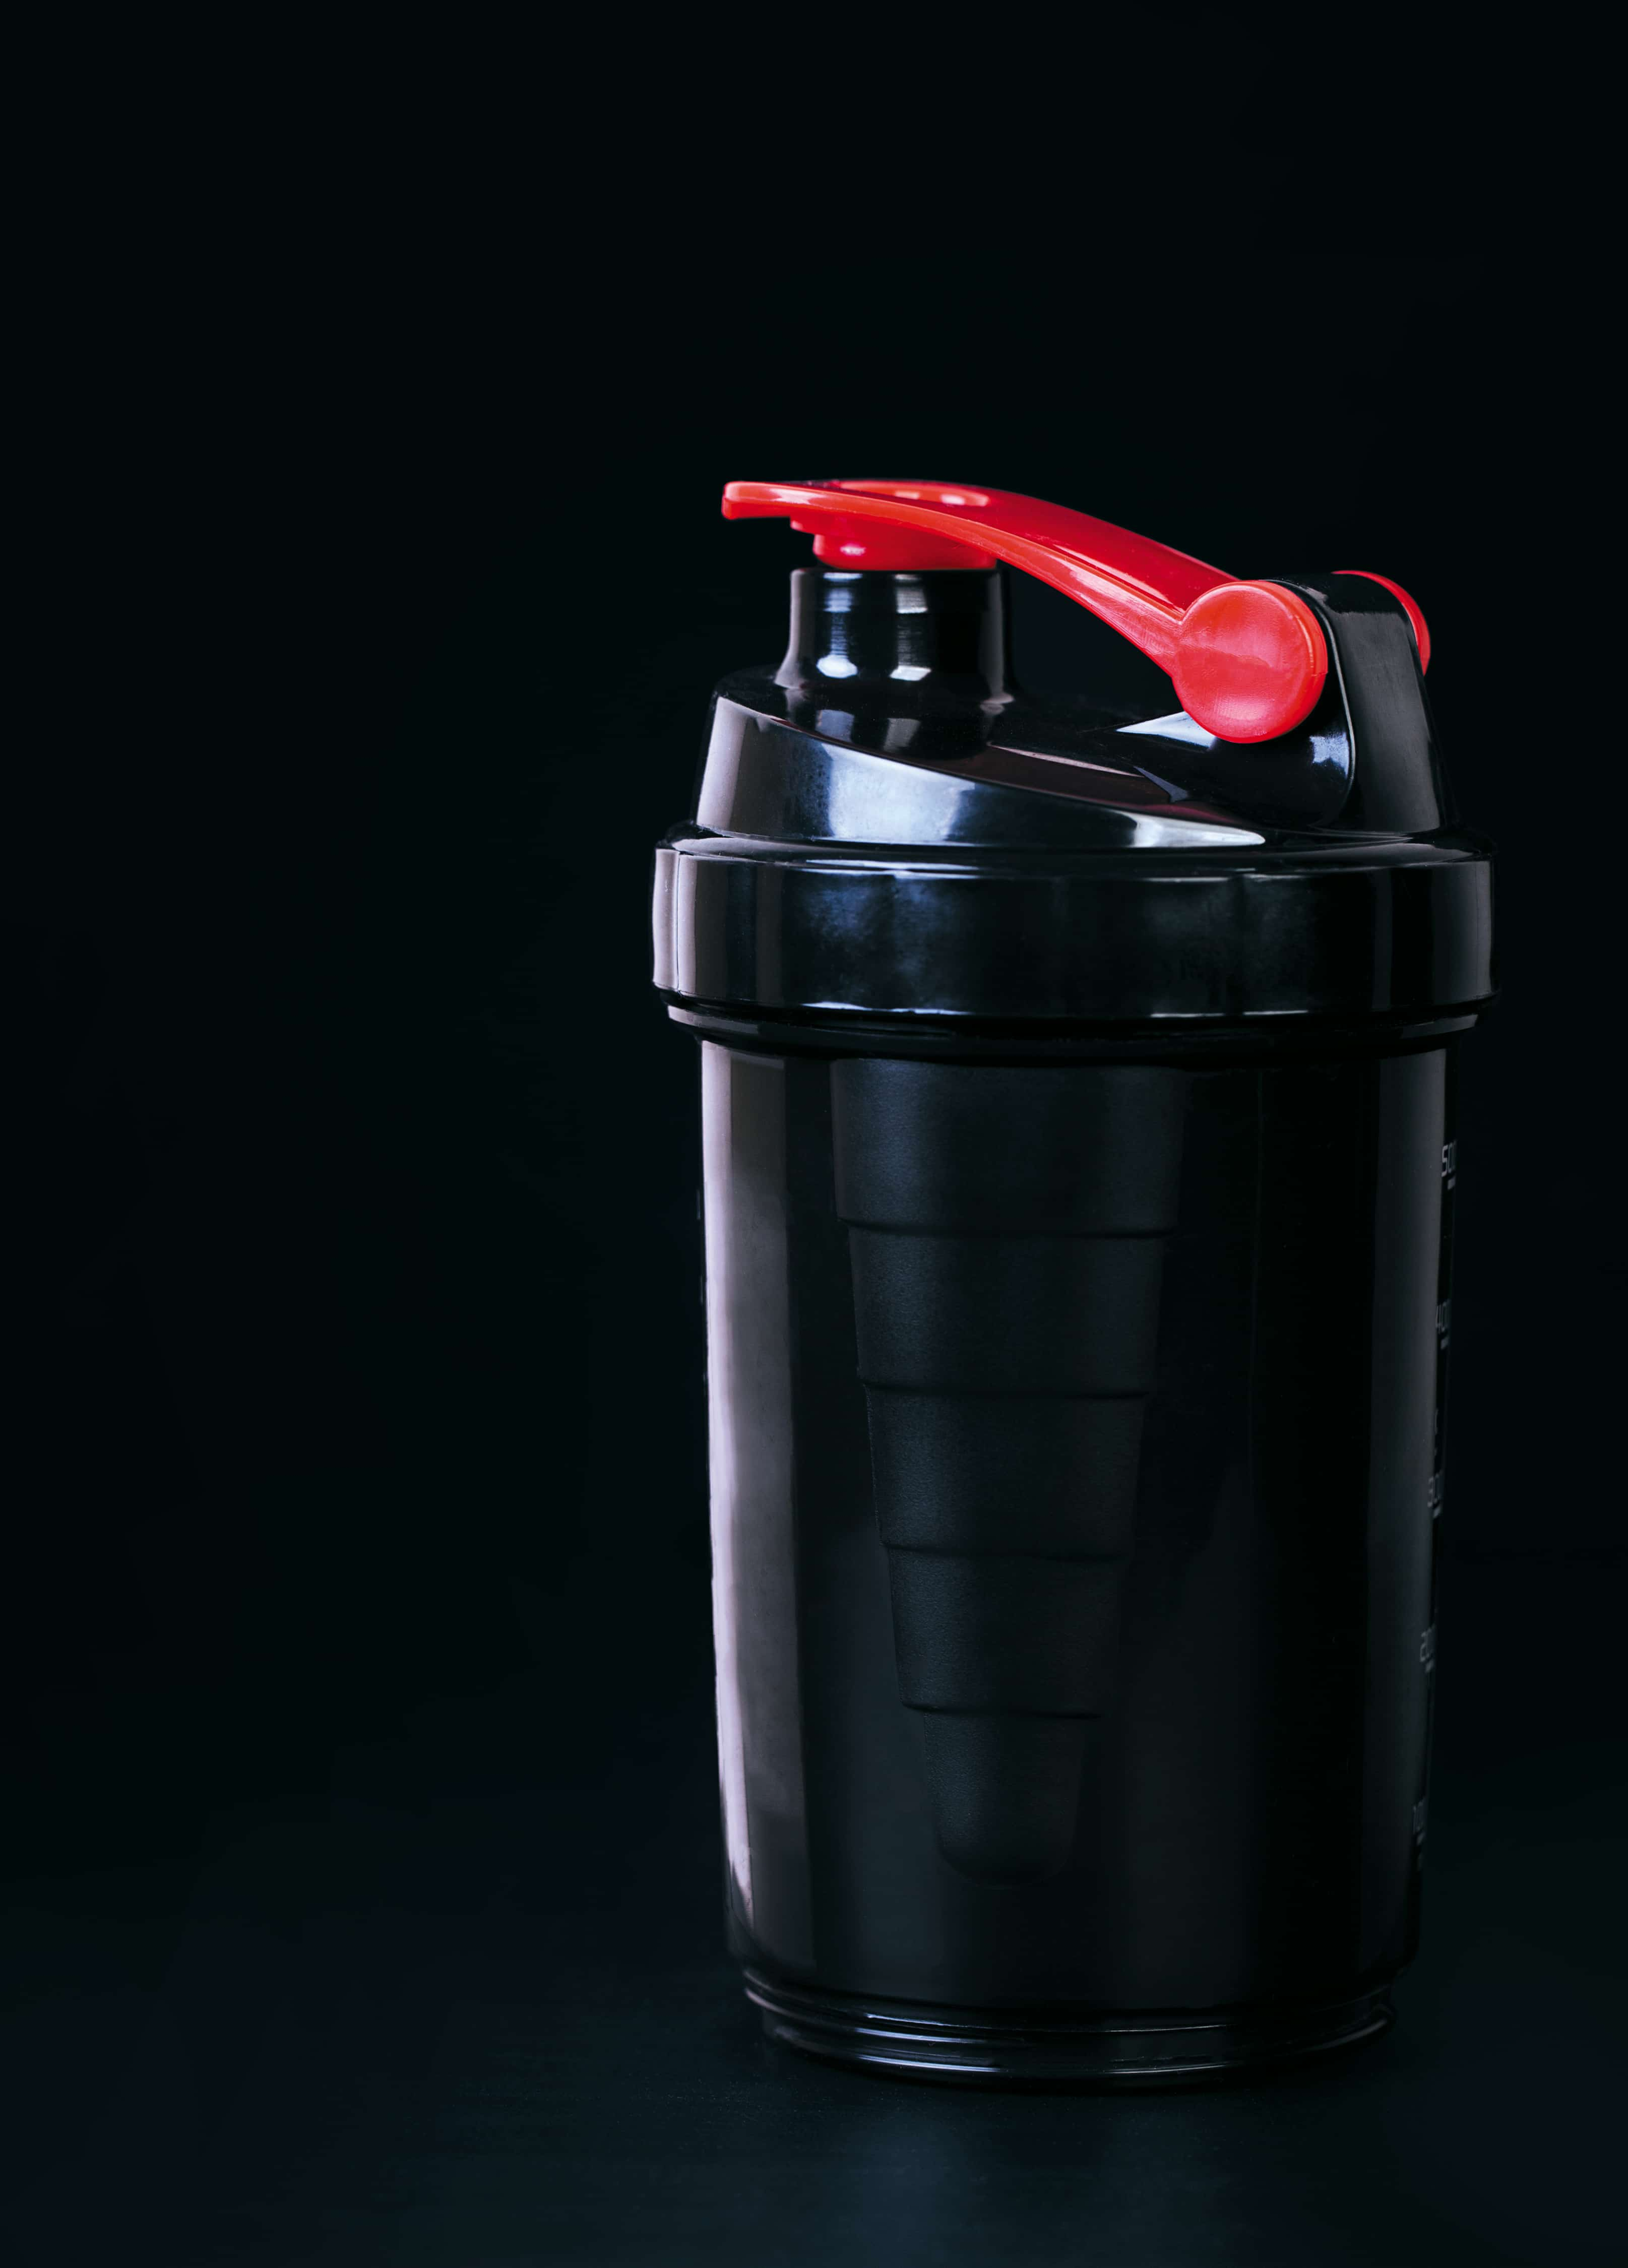 Best Protein Shaker 2020: Shopping guide & Review